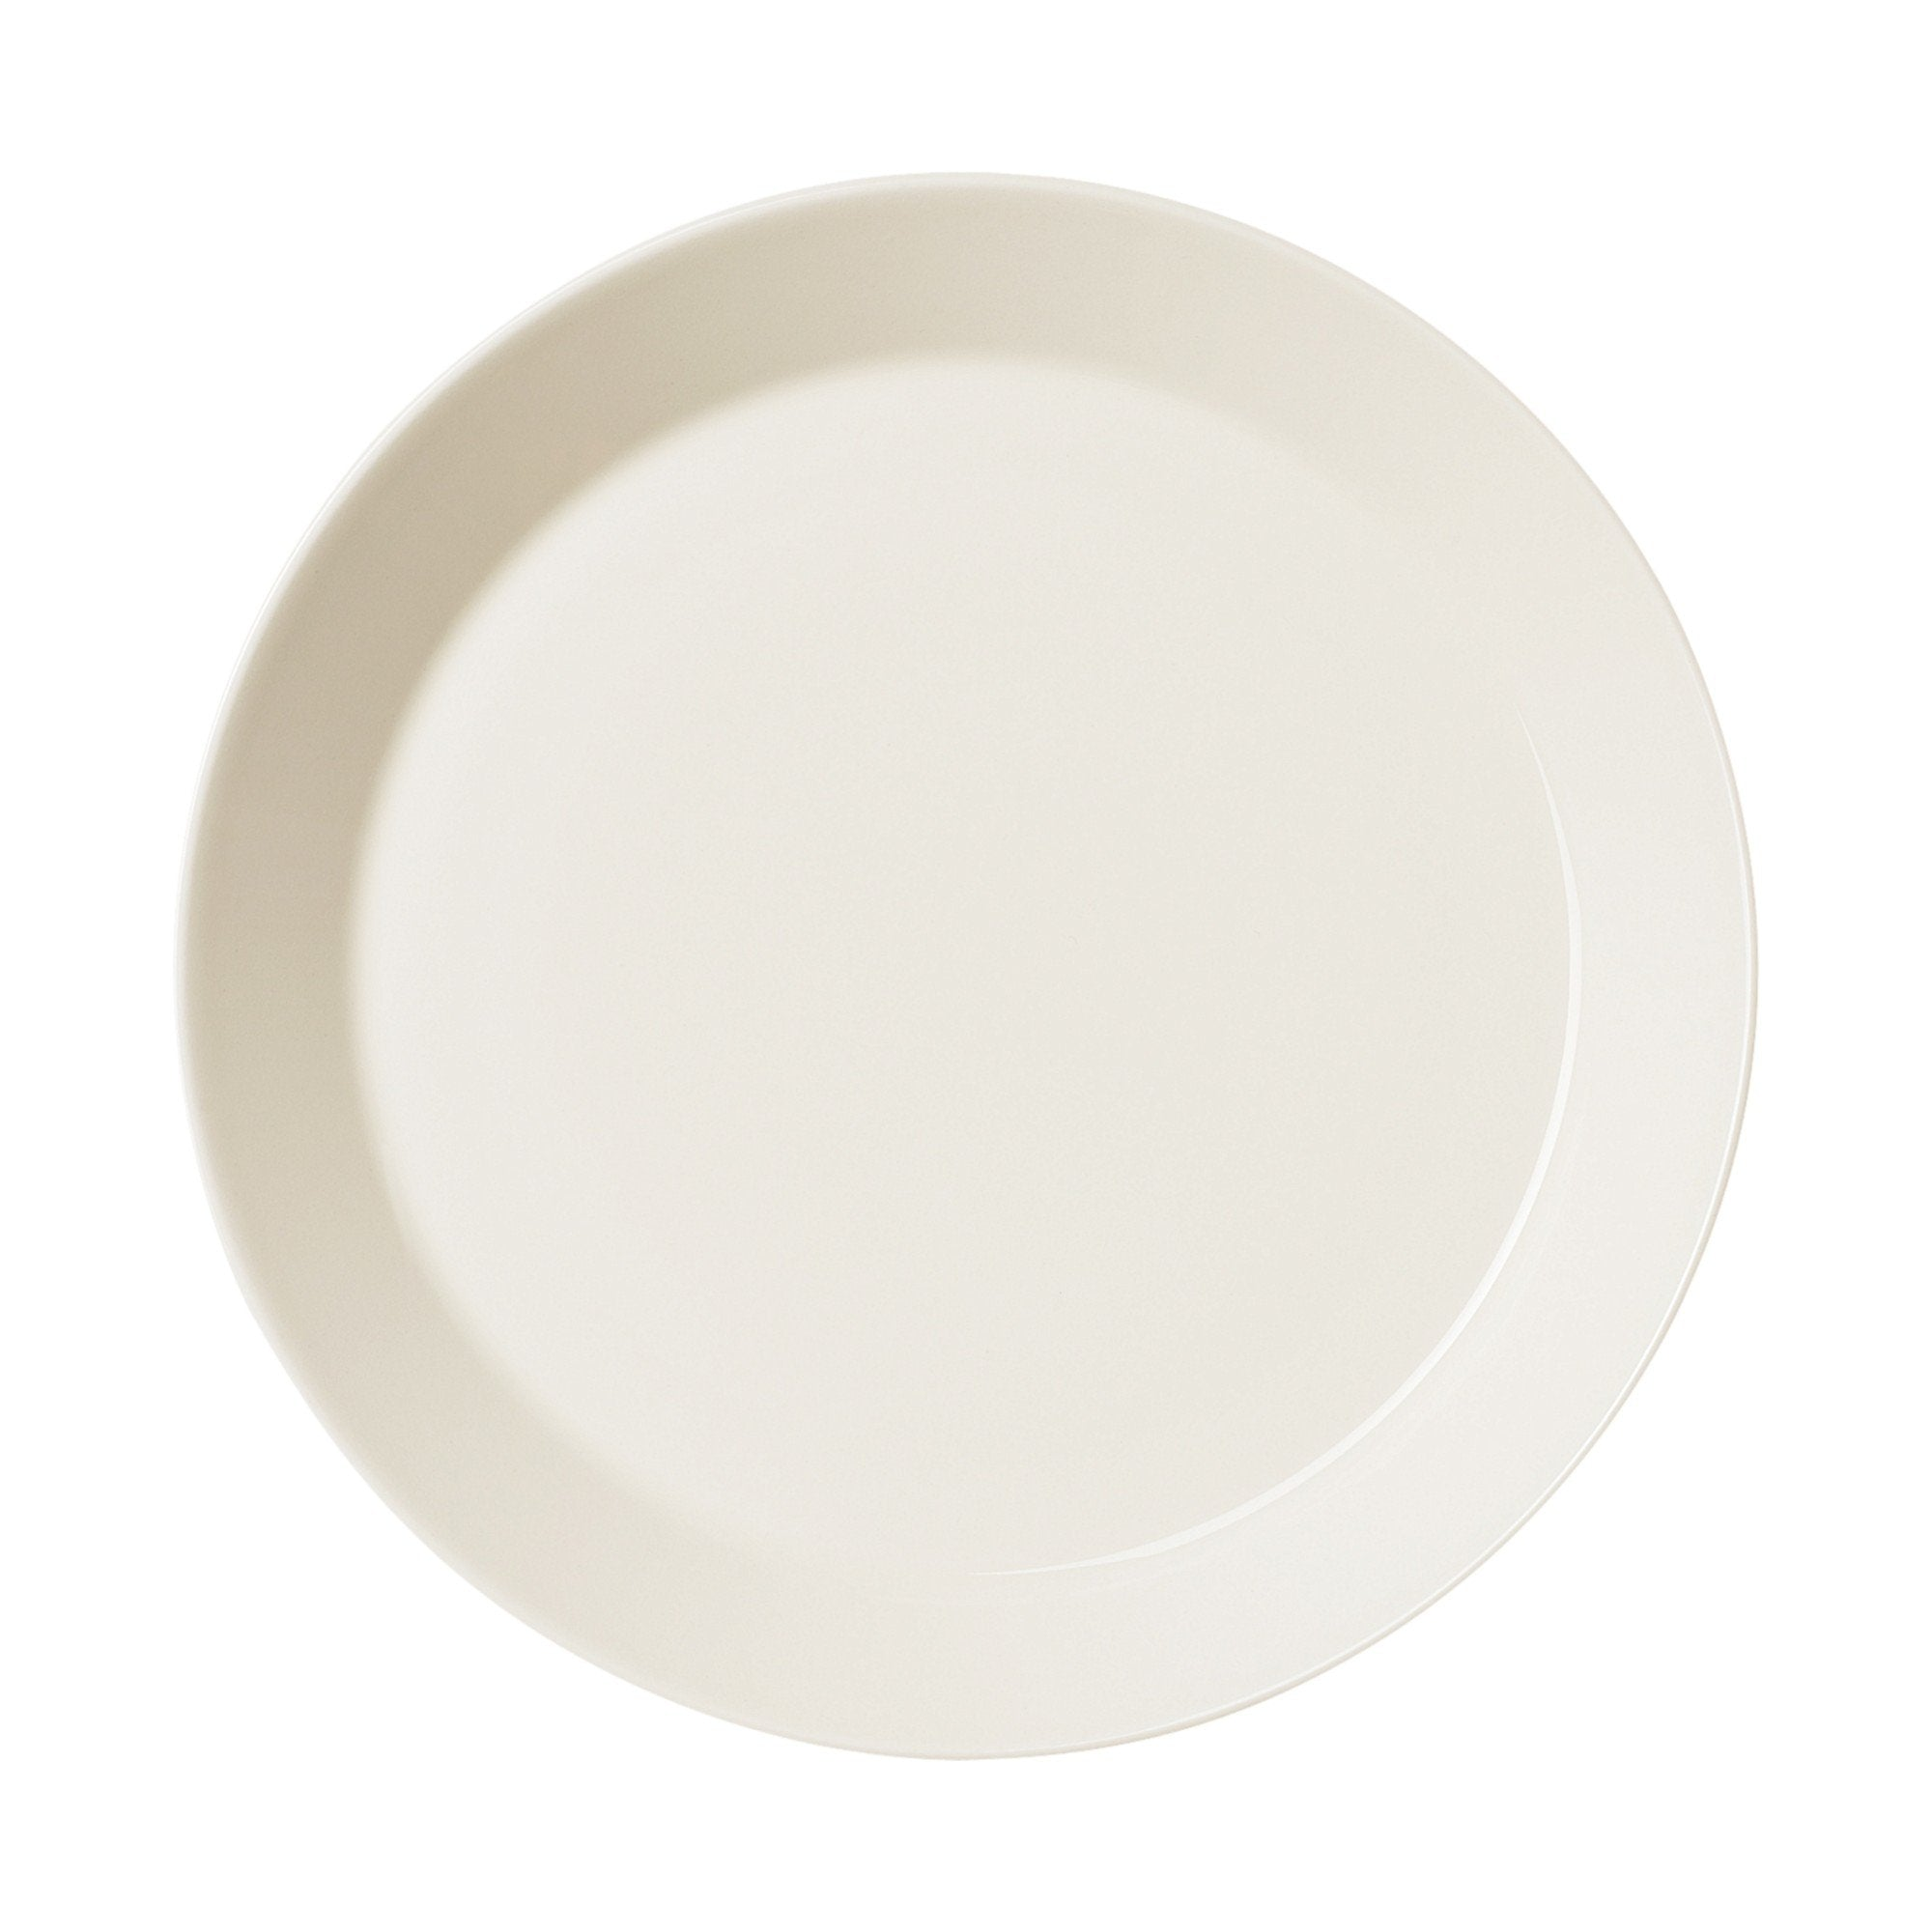 Iittala, Teema Dinner Plate, assorted colors, White- Placewares